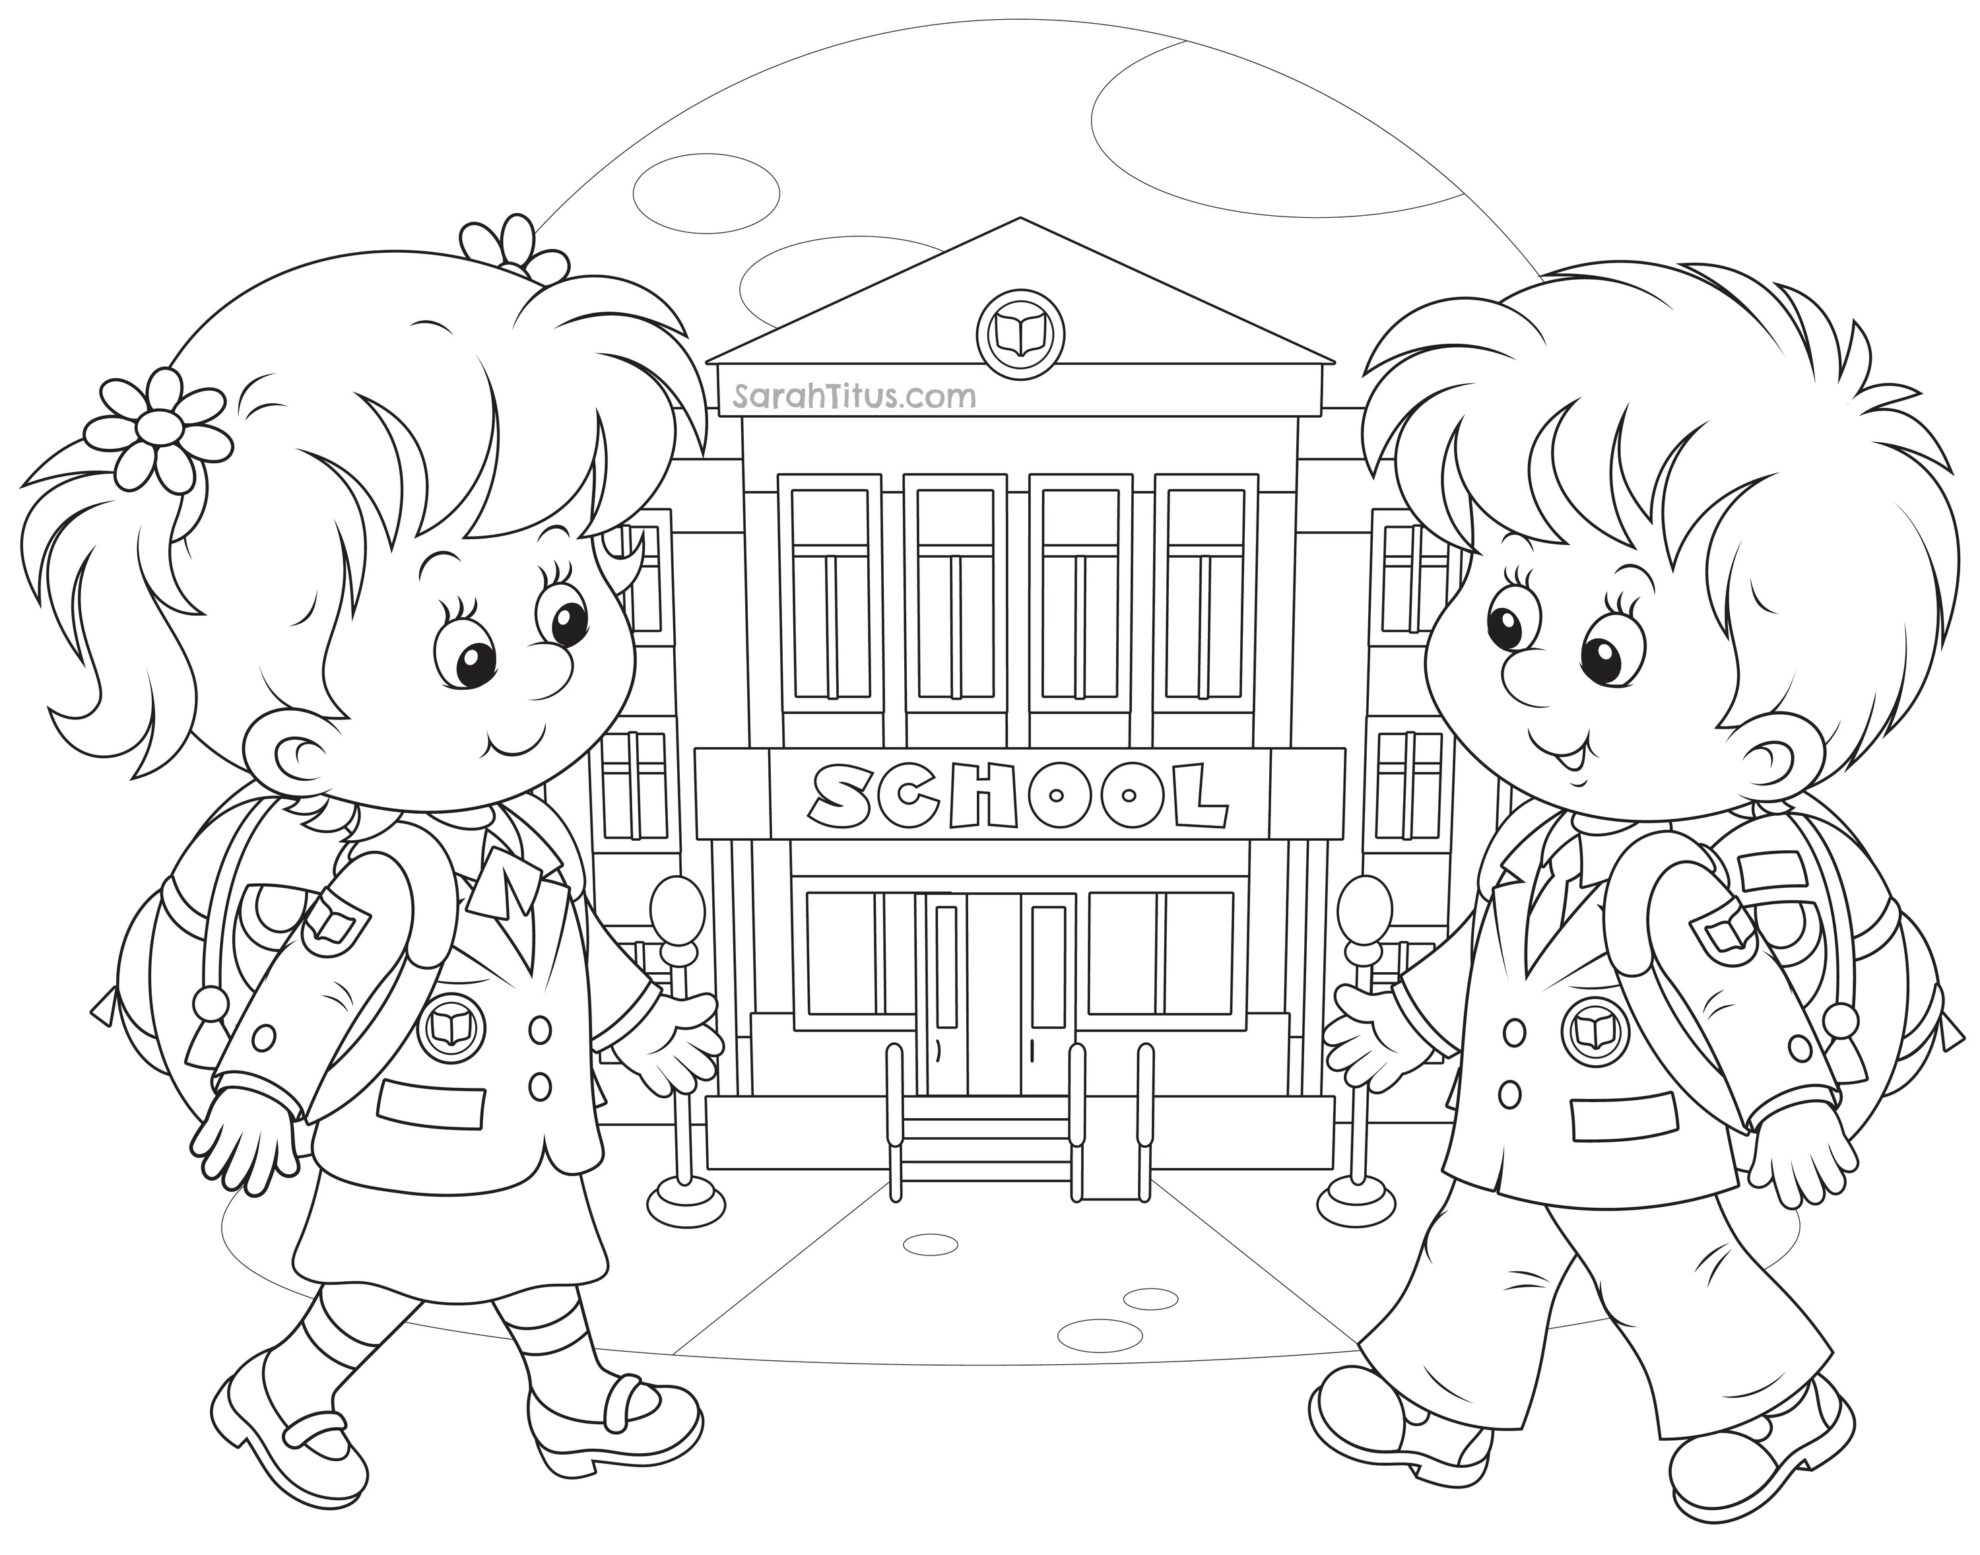 Back to school coloring pages sarah titus for Back to school coloring pages printable